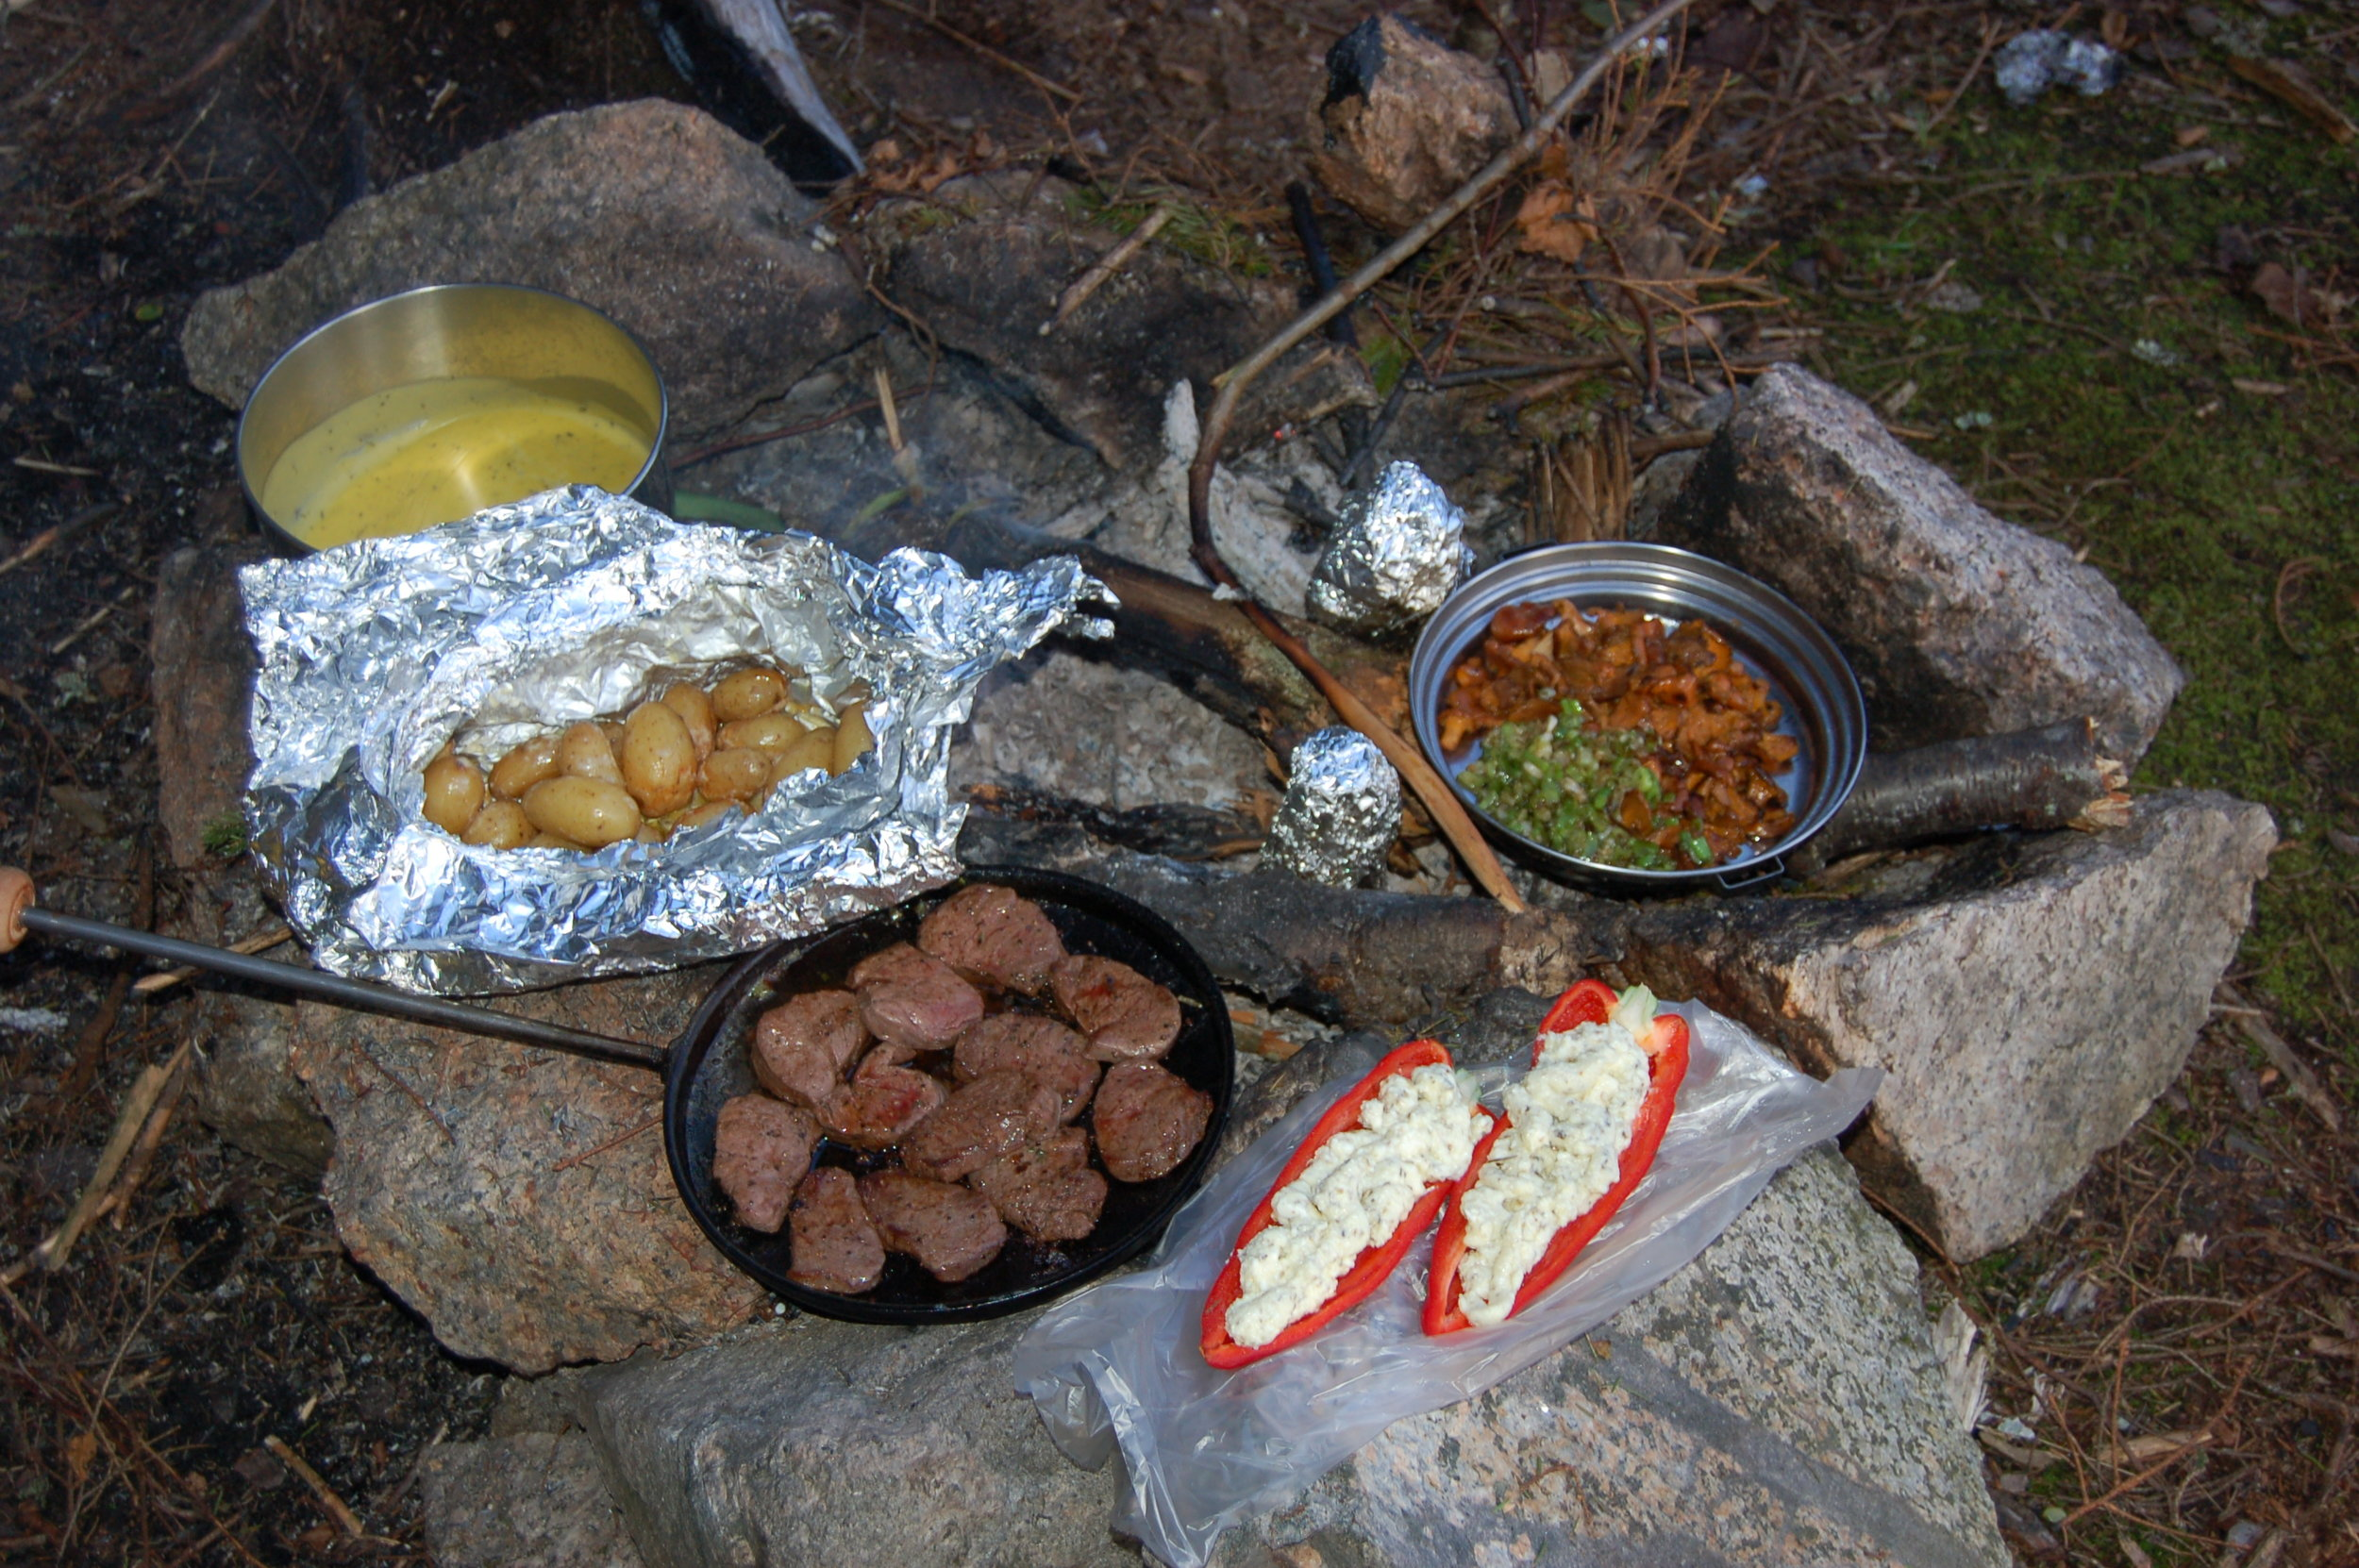 Proper food after a long day of paddling. Elk-beef and local mushrooms (Photo: Oslo Outdoor)